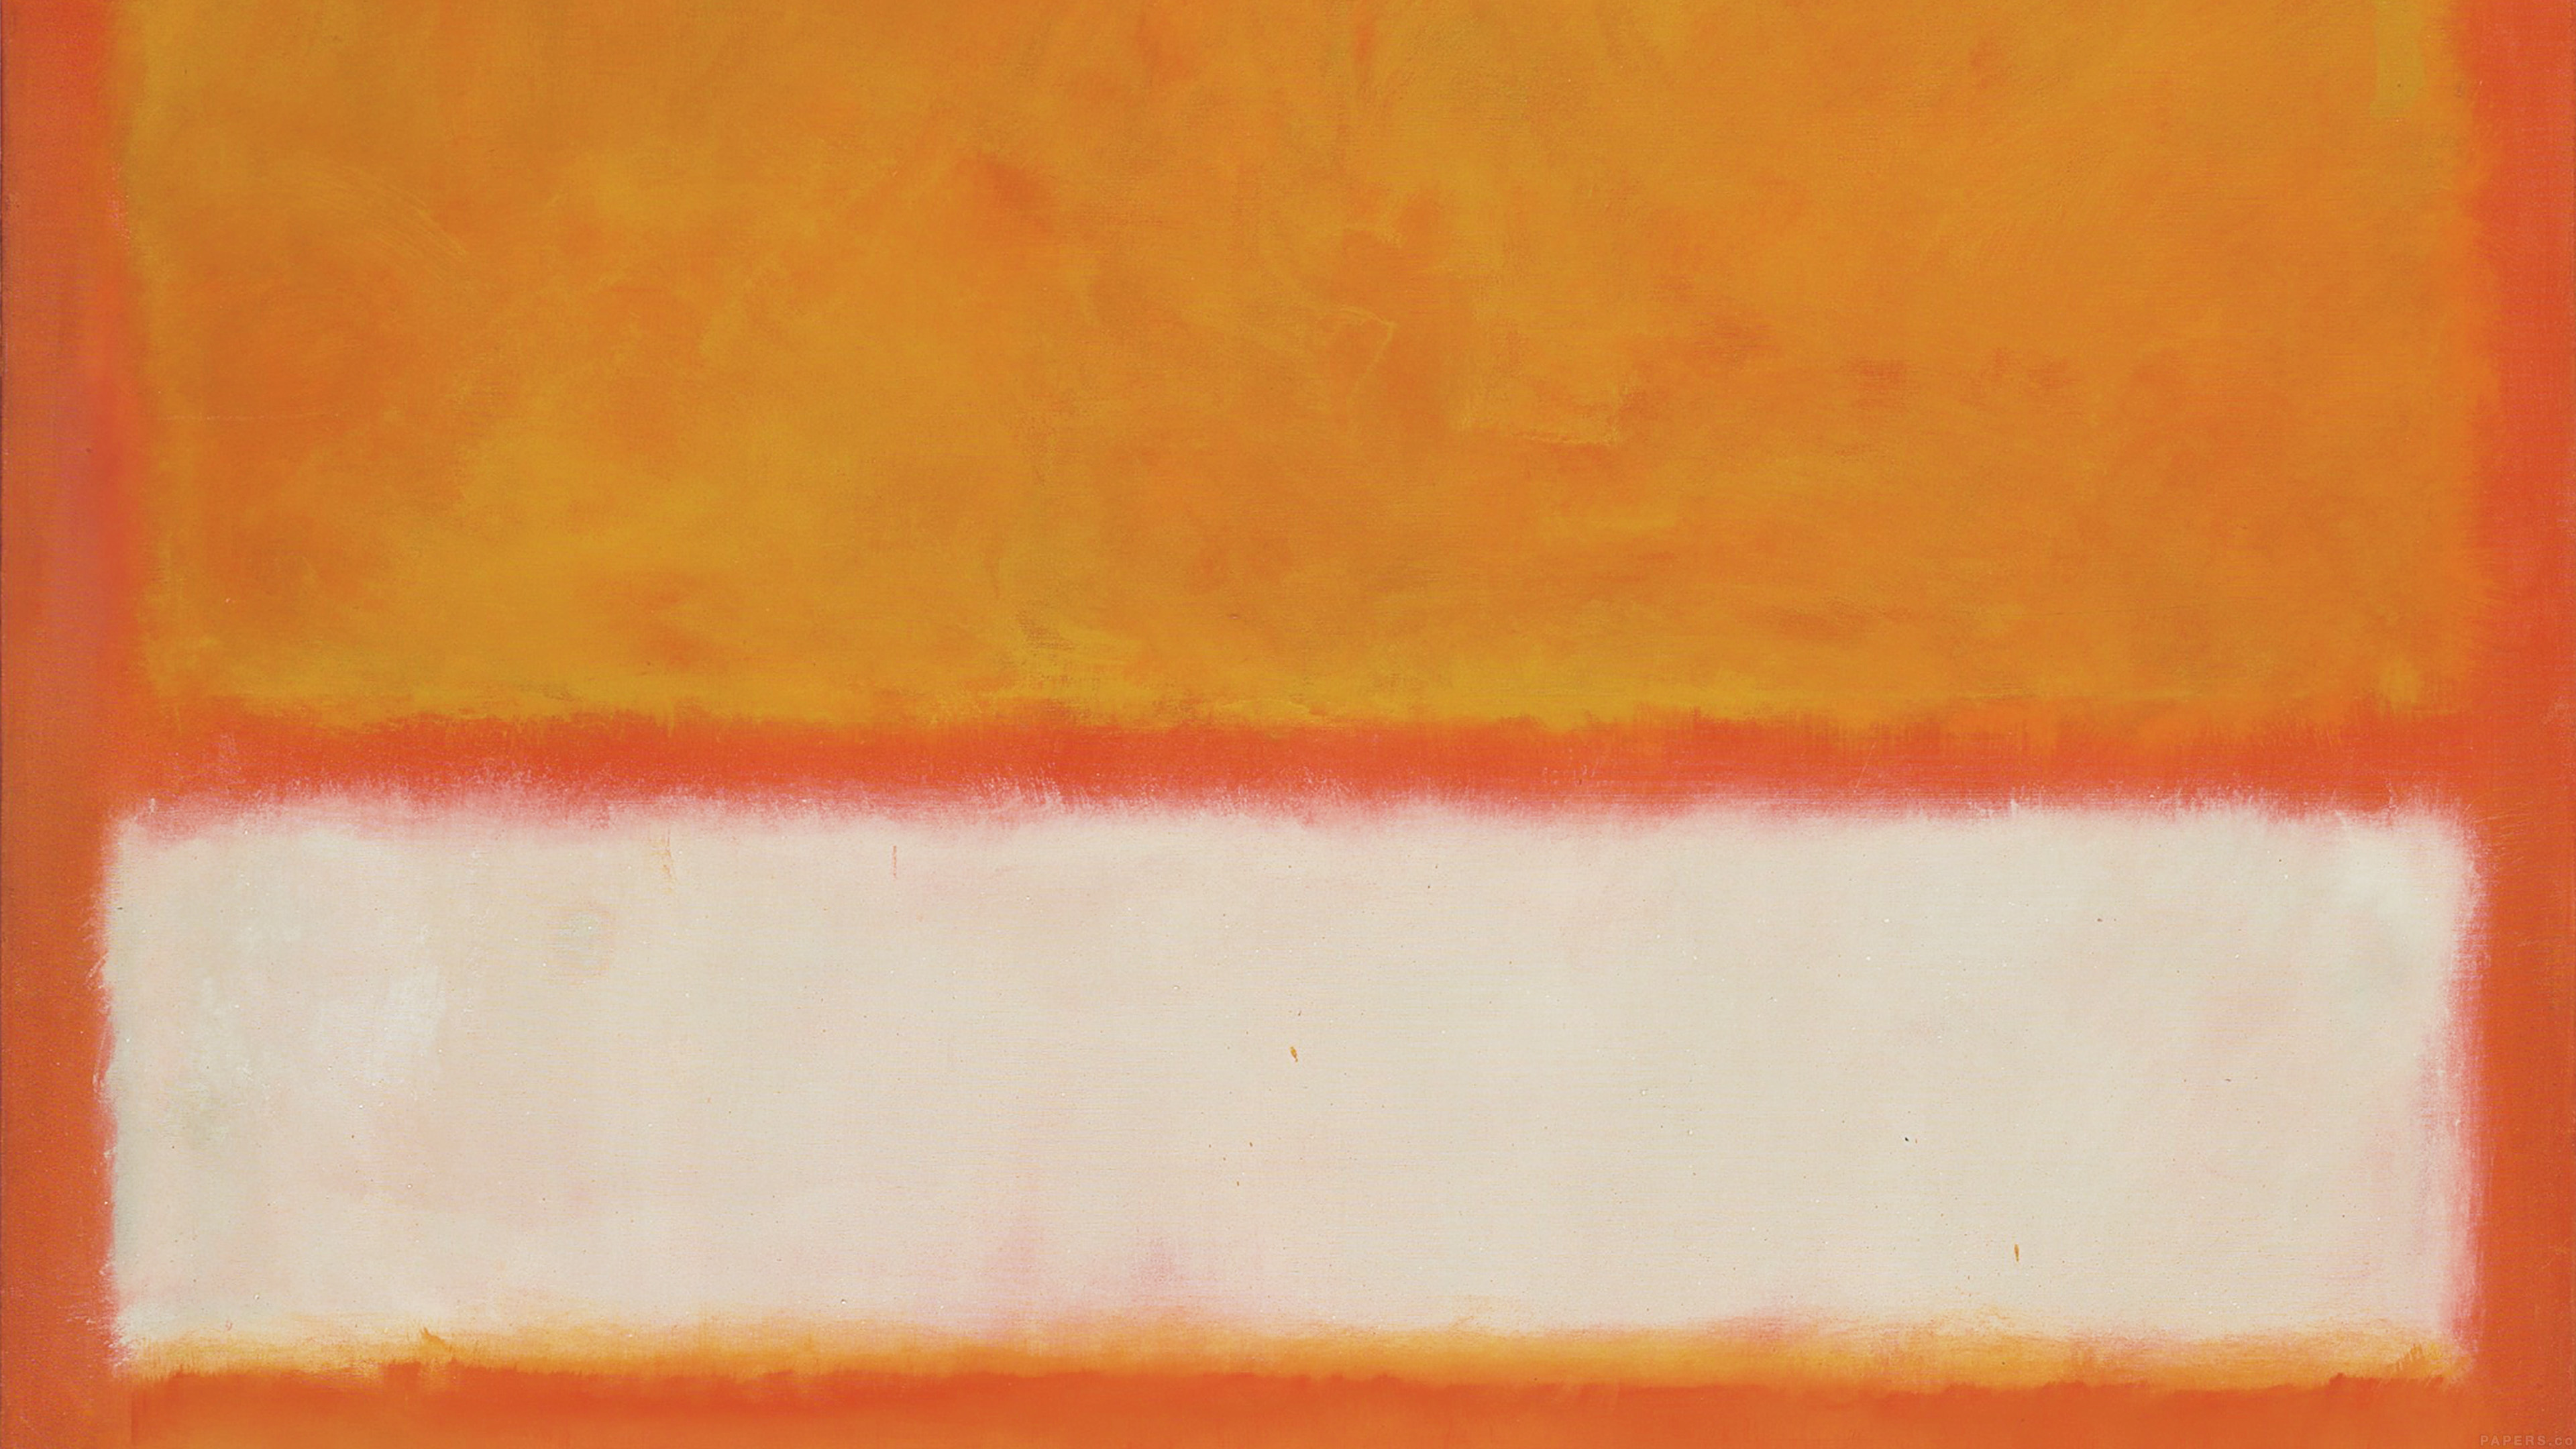 wallpaper for desktop laptop  al74markrothkostylepaintartorangeclassic